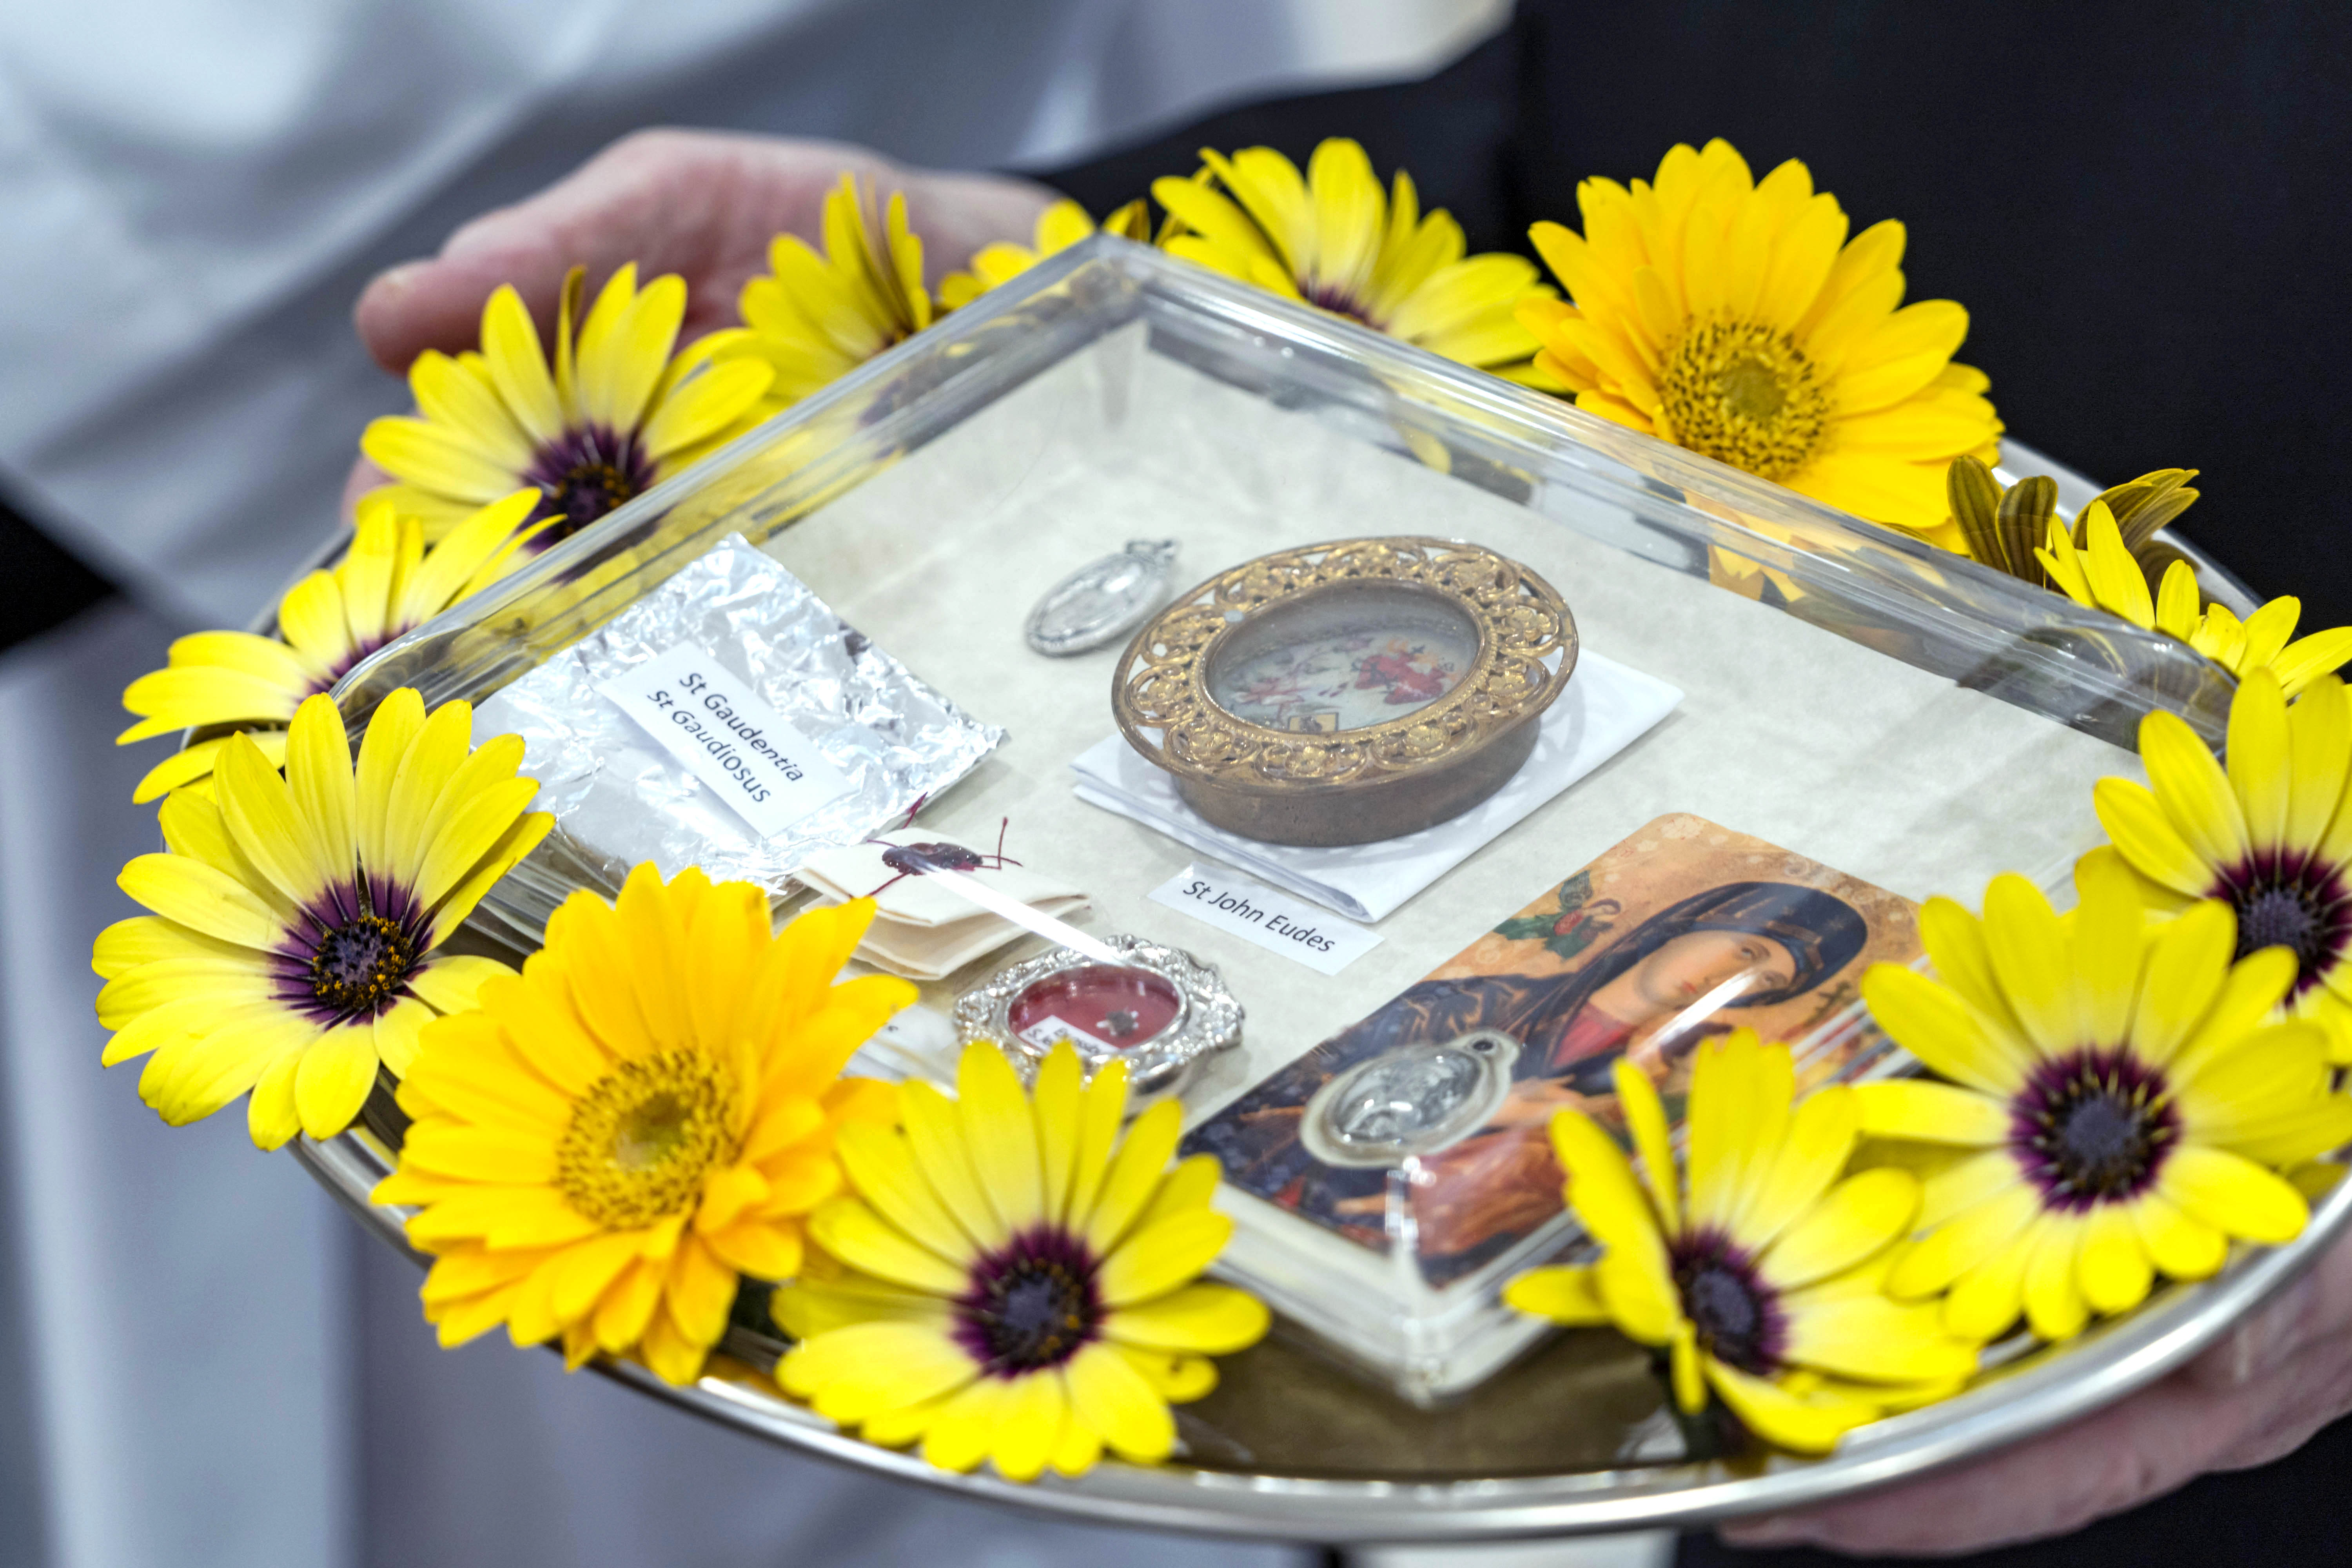 The sacred relics, ready to be sealed within the altar as part of the consecration ceremony. Photo: Josh Low.